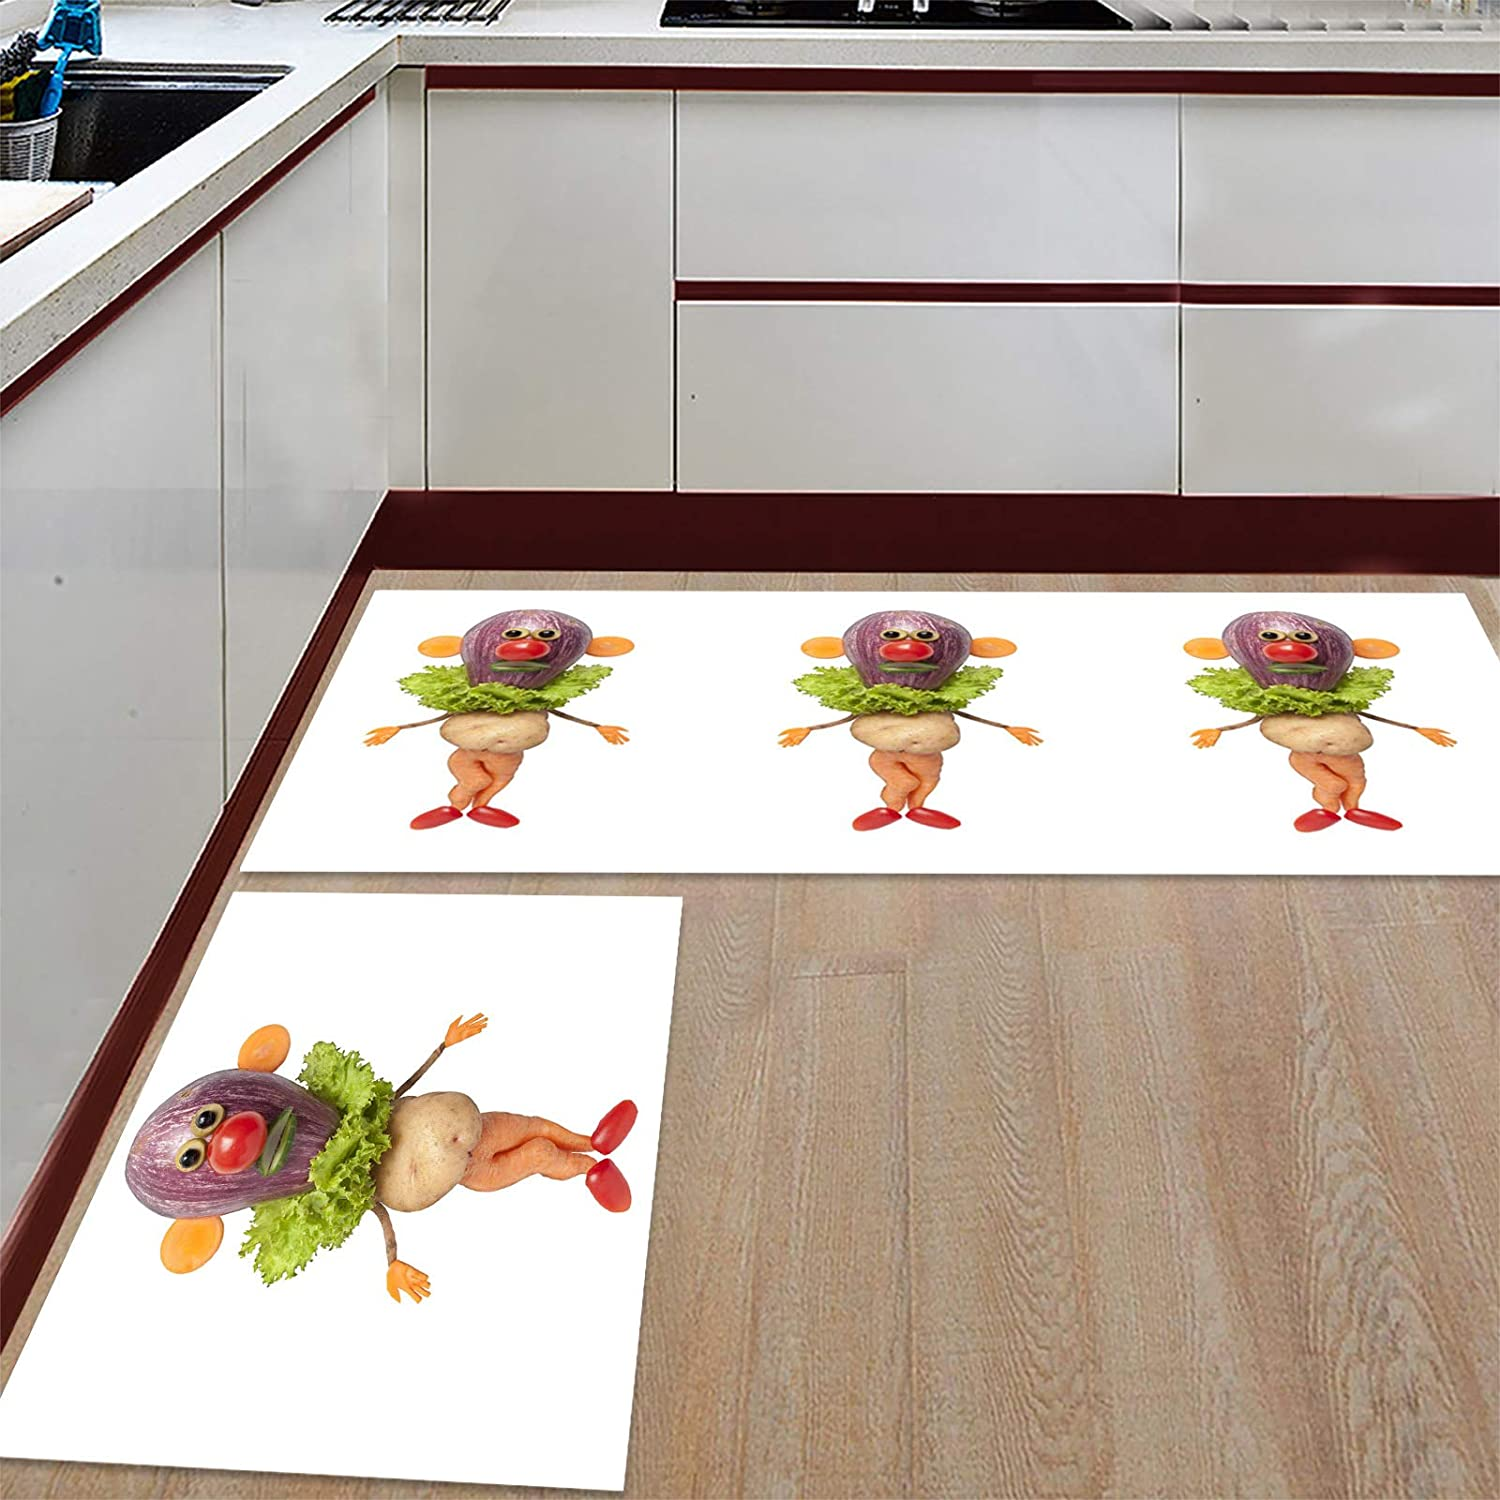 High quality new Advancey 2 Pieces Anti-Slip Kitchen Characters ! Super beauty product restock quality top! Comp Cartoon Mats